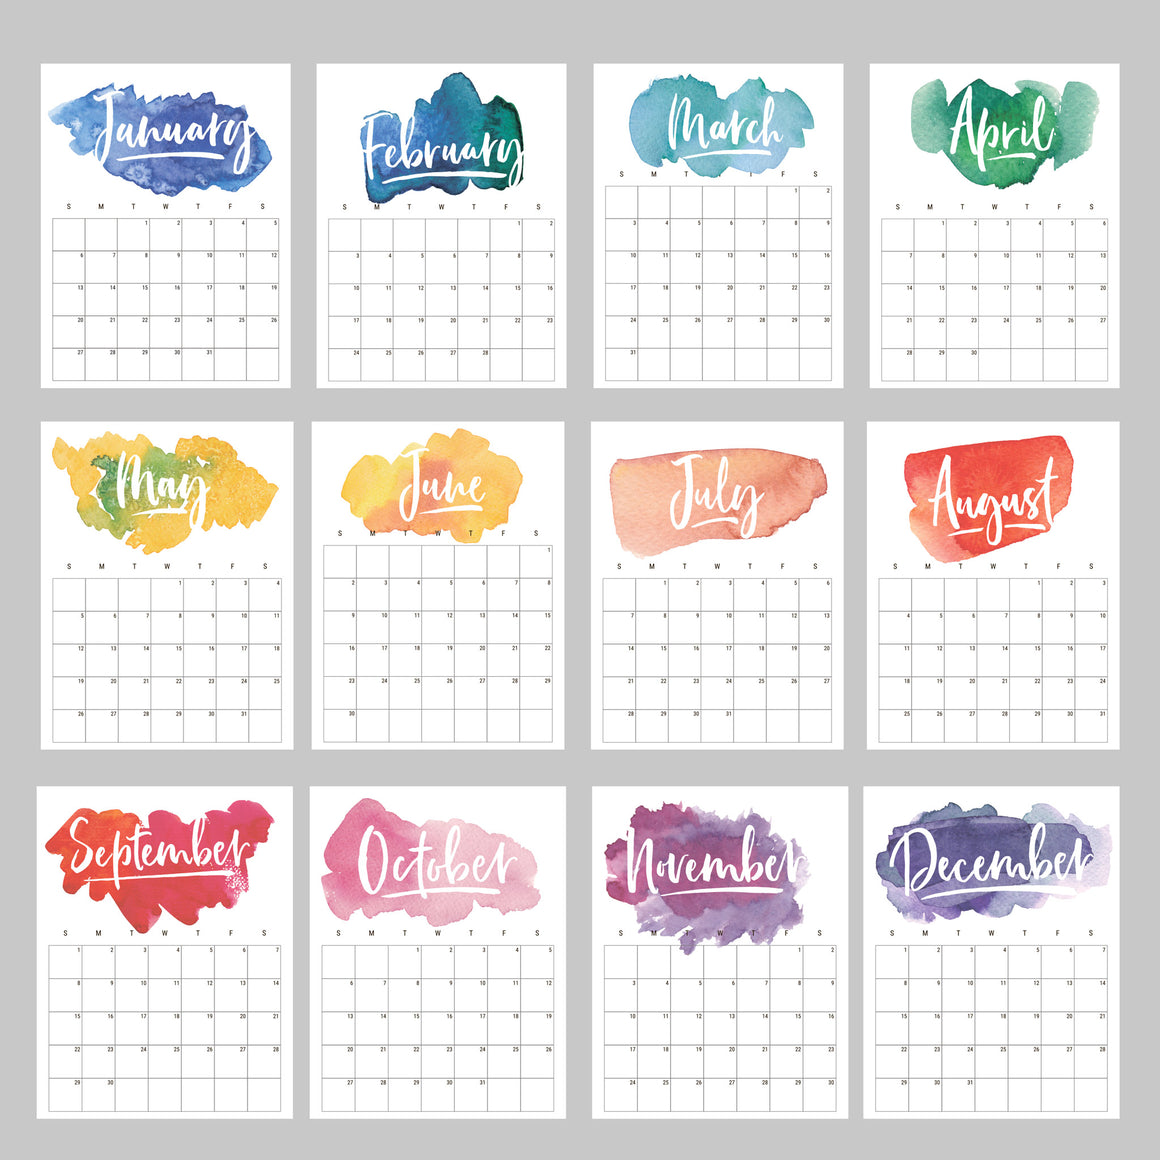 2020 Rainbow Watercolor Calendar